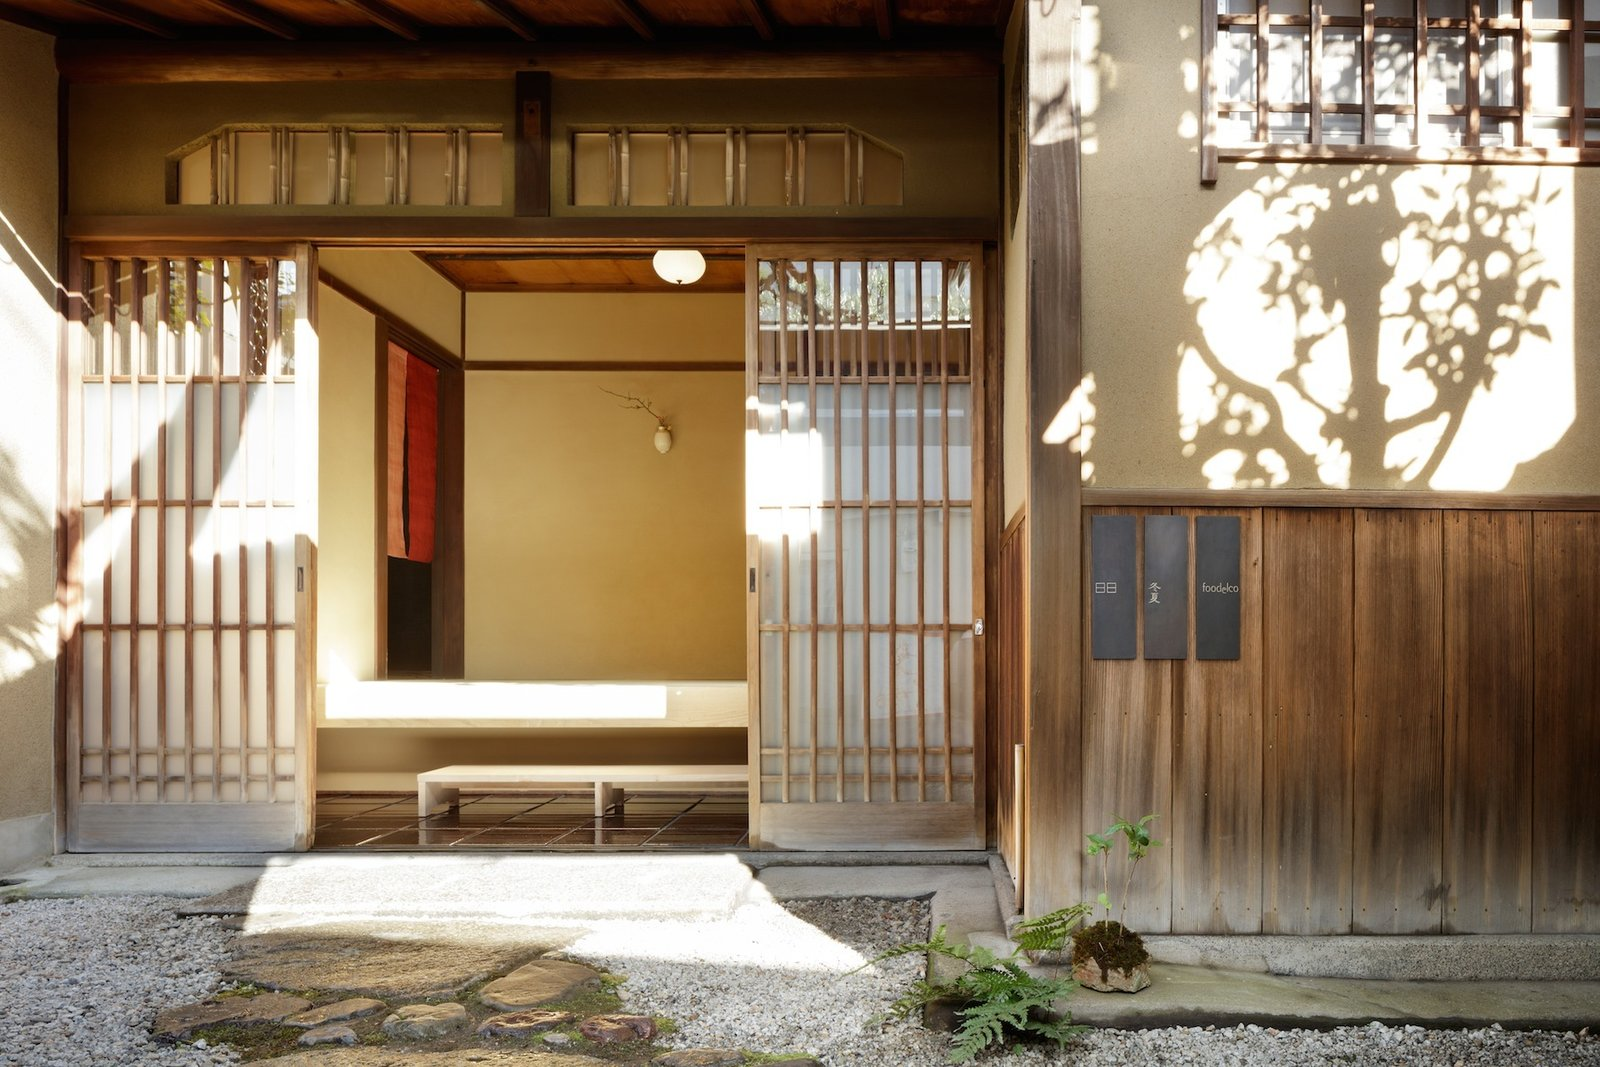 Outdoor, Garden, Walkways, and Hardscapes Fukuoka-based firm CASE-REAL executed a renovation of the century-old residence in 2015, creating functional zones that would serve their clients' lifestyles and accommodate guests: a tea room, gallery space, office, and guest room. The modern aesthetics of the townhouse are surrounded by the thick, clay walls of a traditional Japanese warehouse, a rarity in historic memory in the neighborhood.  The thoughtfully detailed interior make for quiet, comfortable spaces that evoke a calming energy and look out at seasonal environments.  Nichinichi Townhouse from A Minimalist Townhouse Provides Serene Accommodations in Historic Kyoto